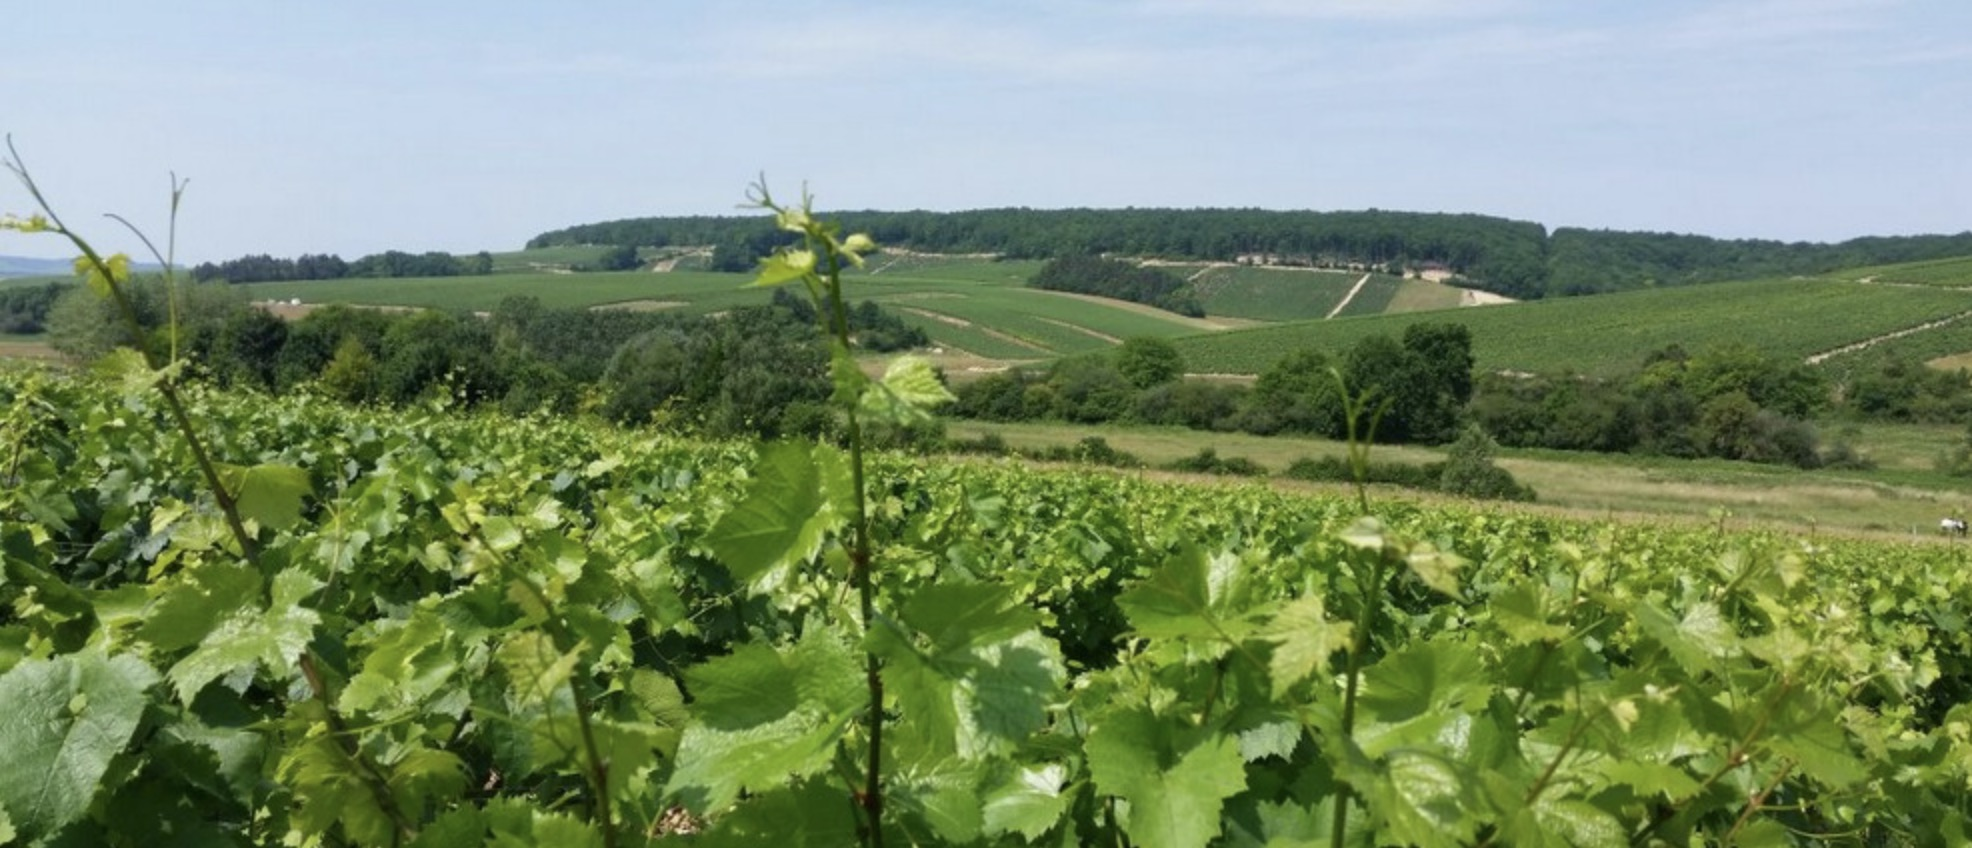 France_Dampt_winery Image.jpg